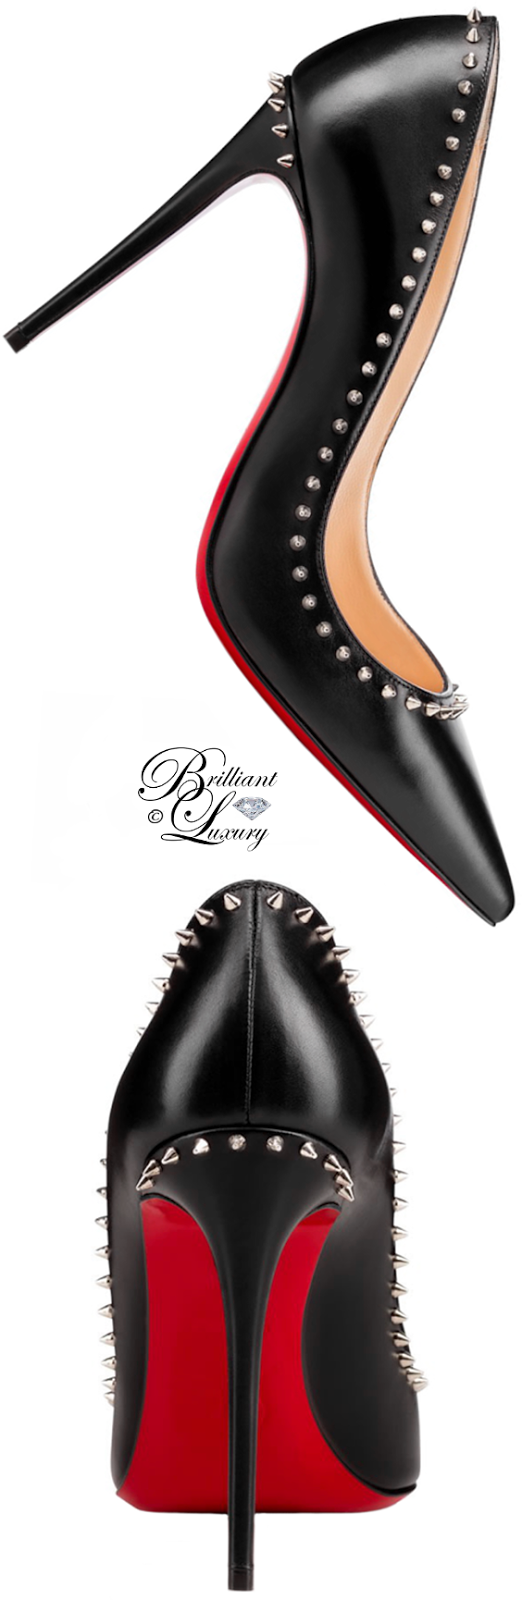 Brilliant Luxury ♦ Christian Louboutin Anjalina Studded Patent-Leather Red Sole Pump